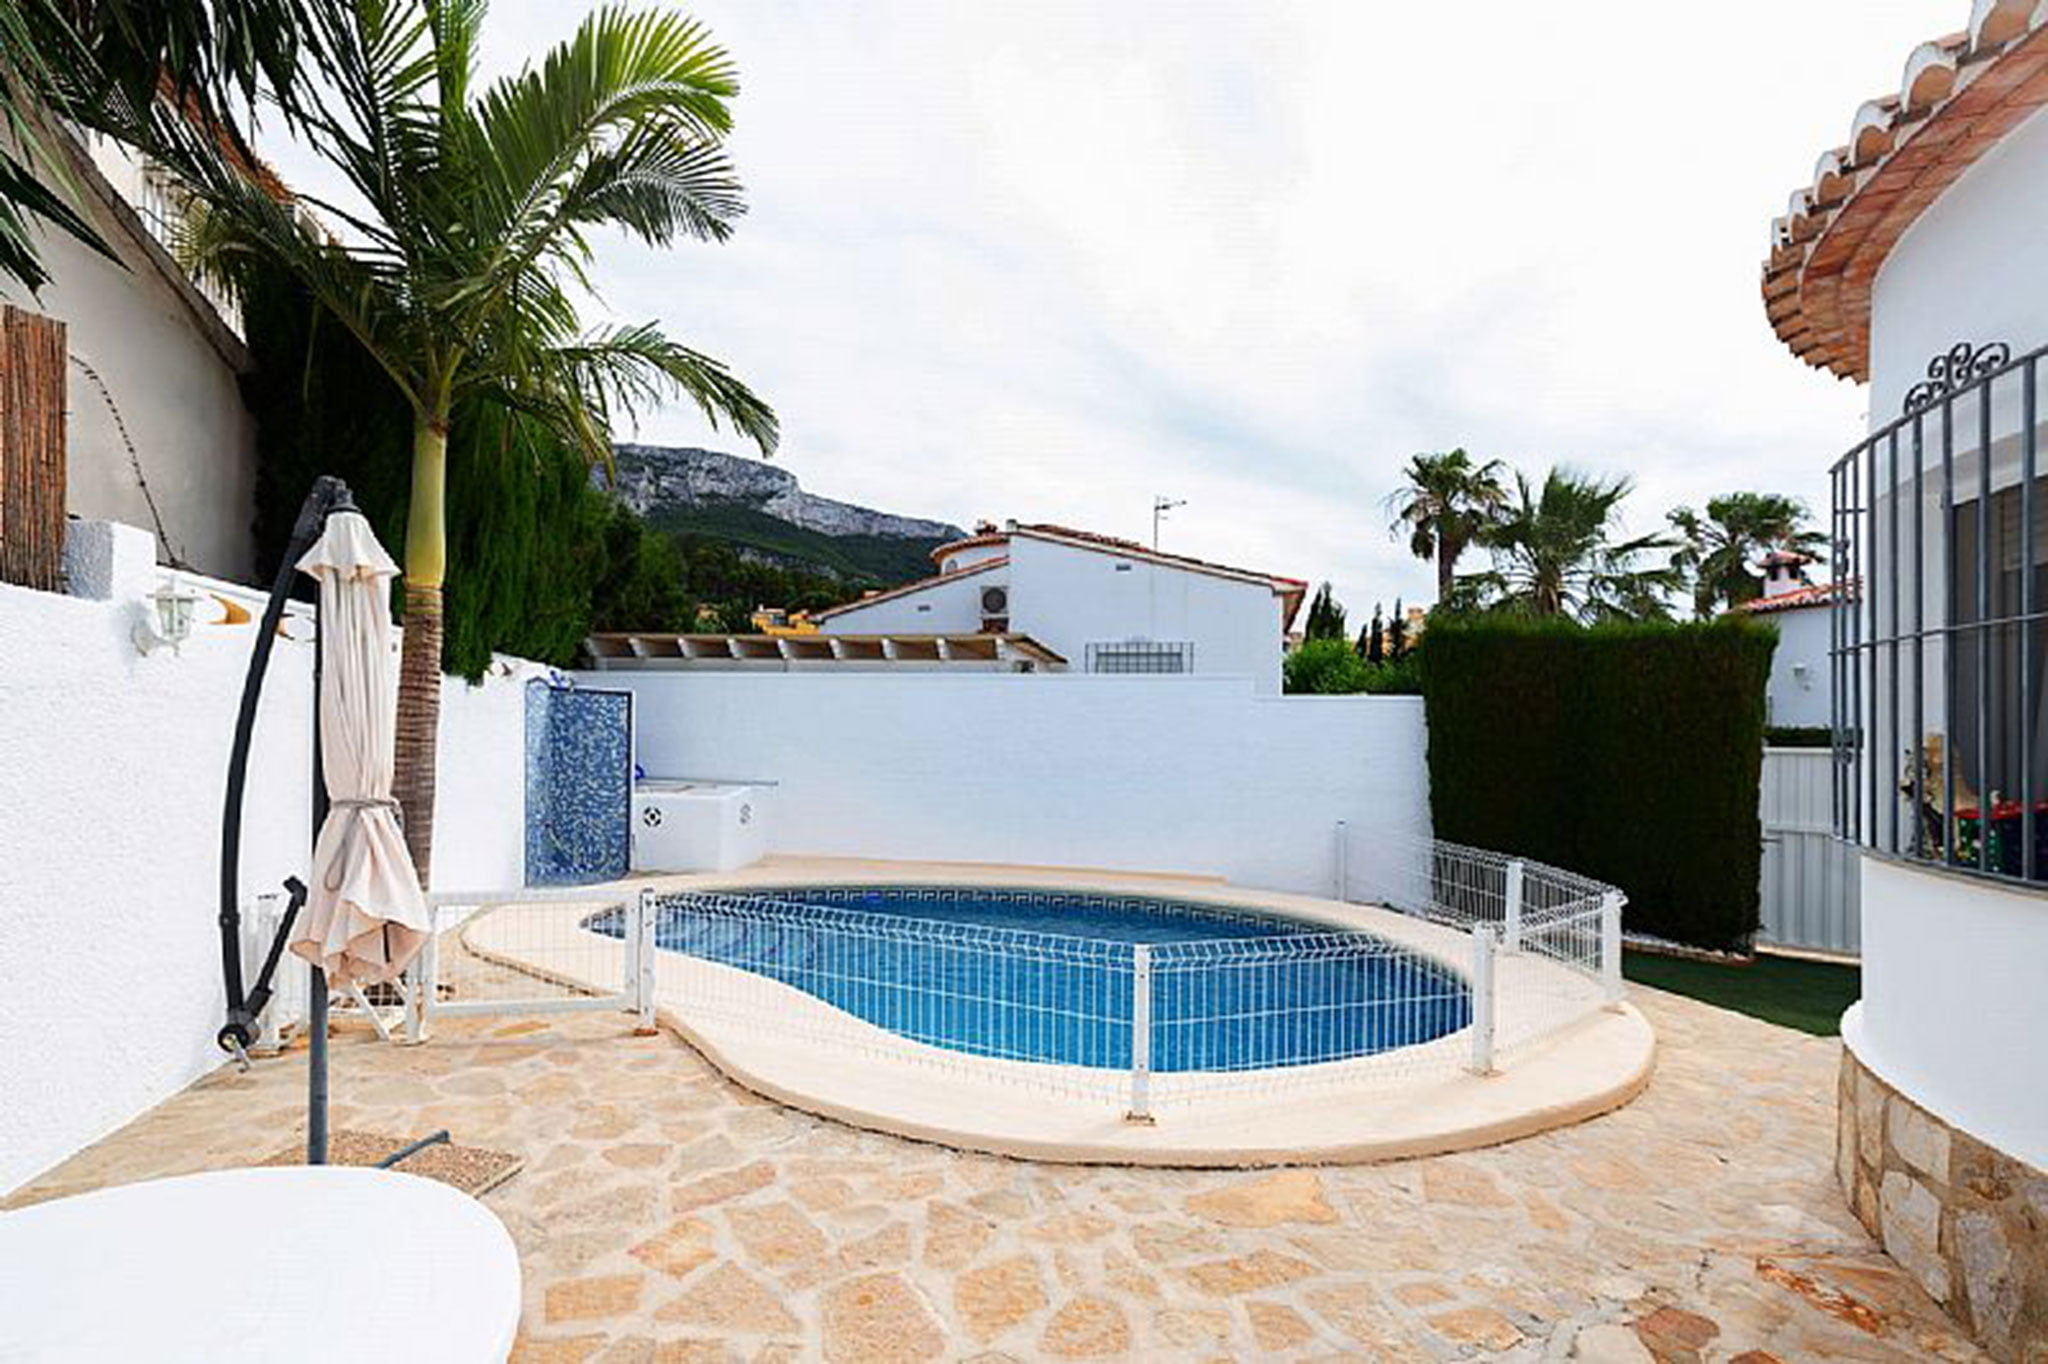 Pool of a chalet for sale in Dénia - Euroholding